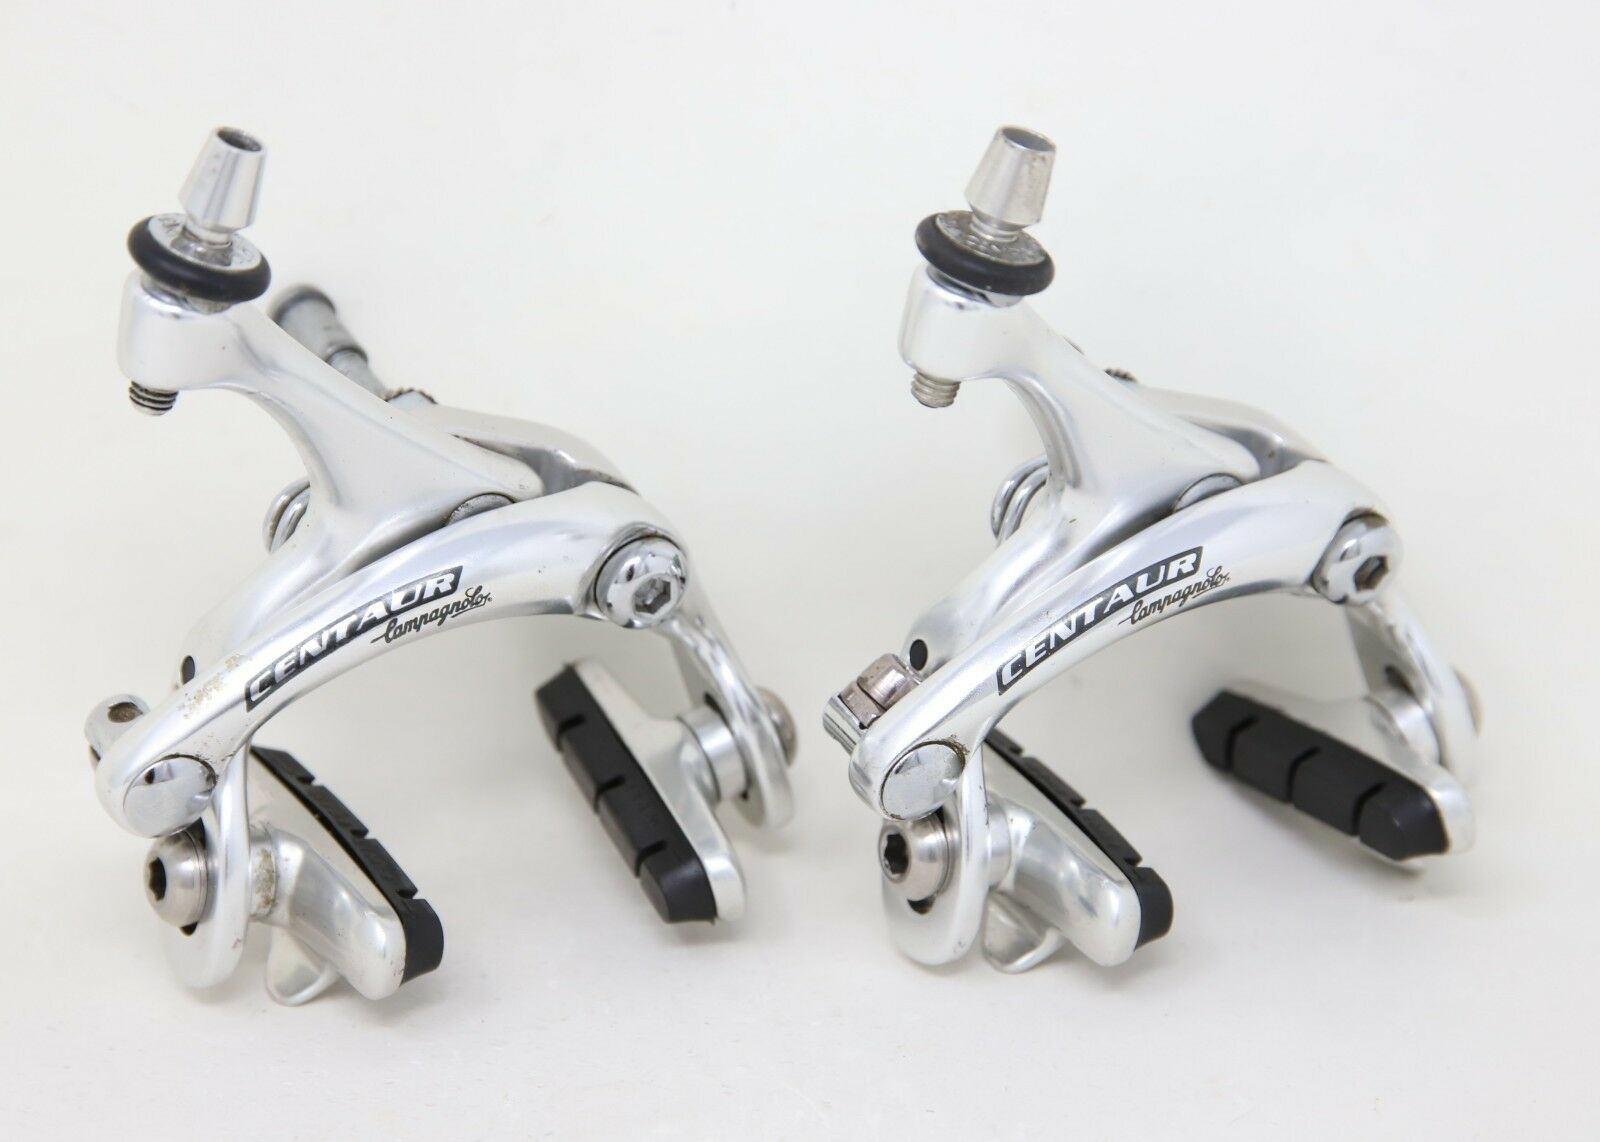 CAMPAGNOLO CENTAUR DUAL PIVOT BRAKE CALIPERS BRAKES early 90s -  EXCELLENT  online